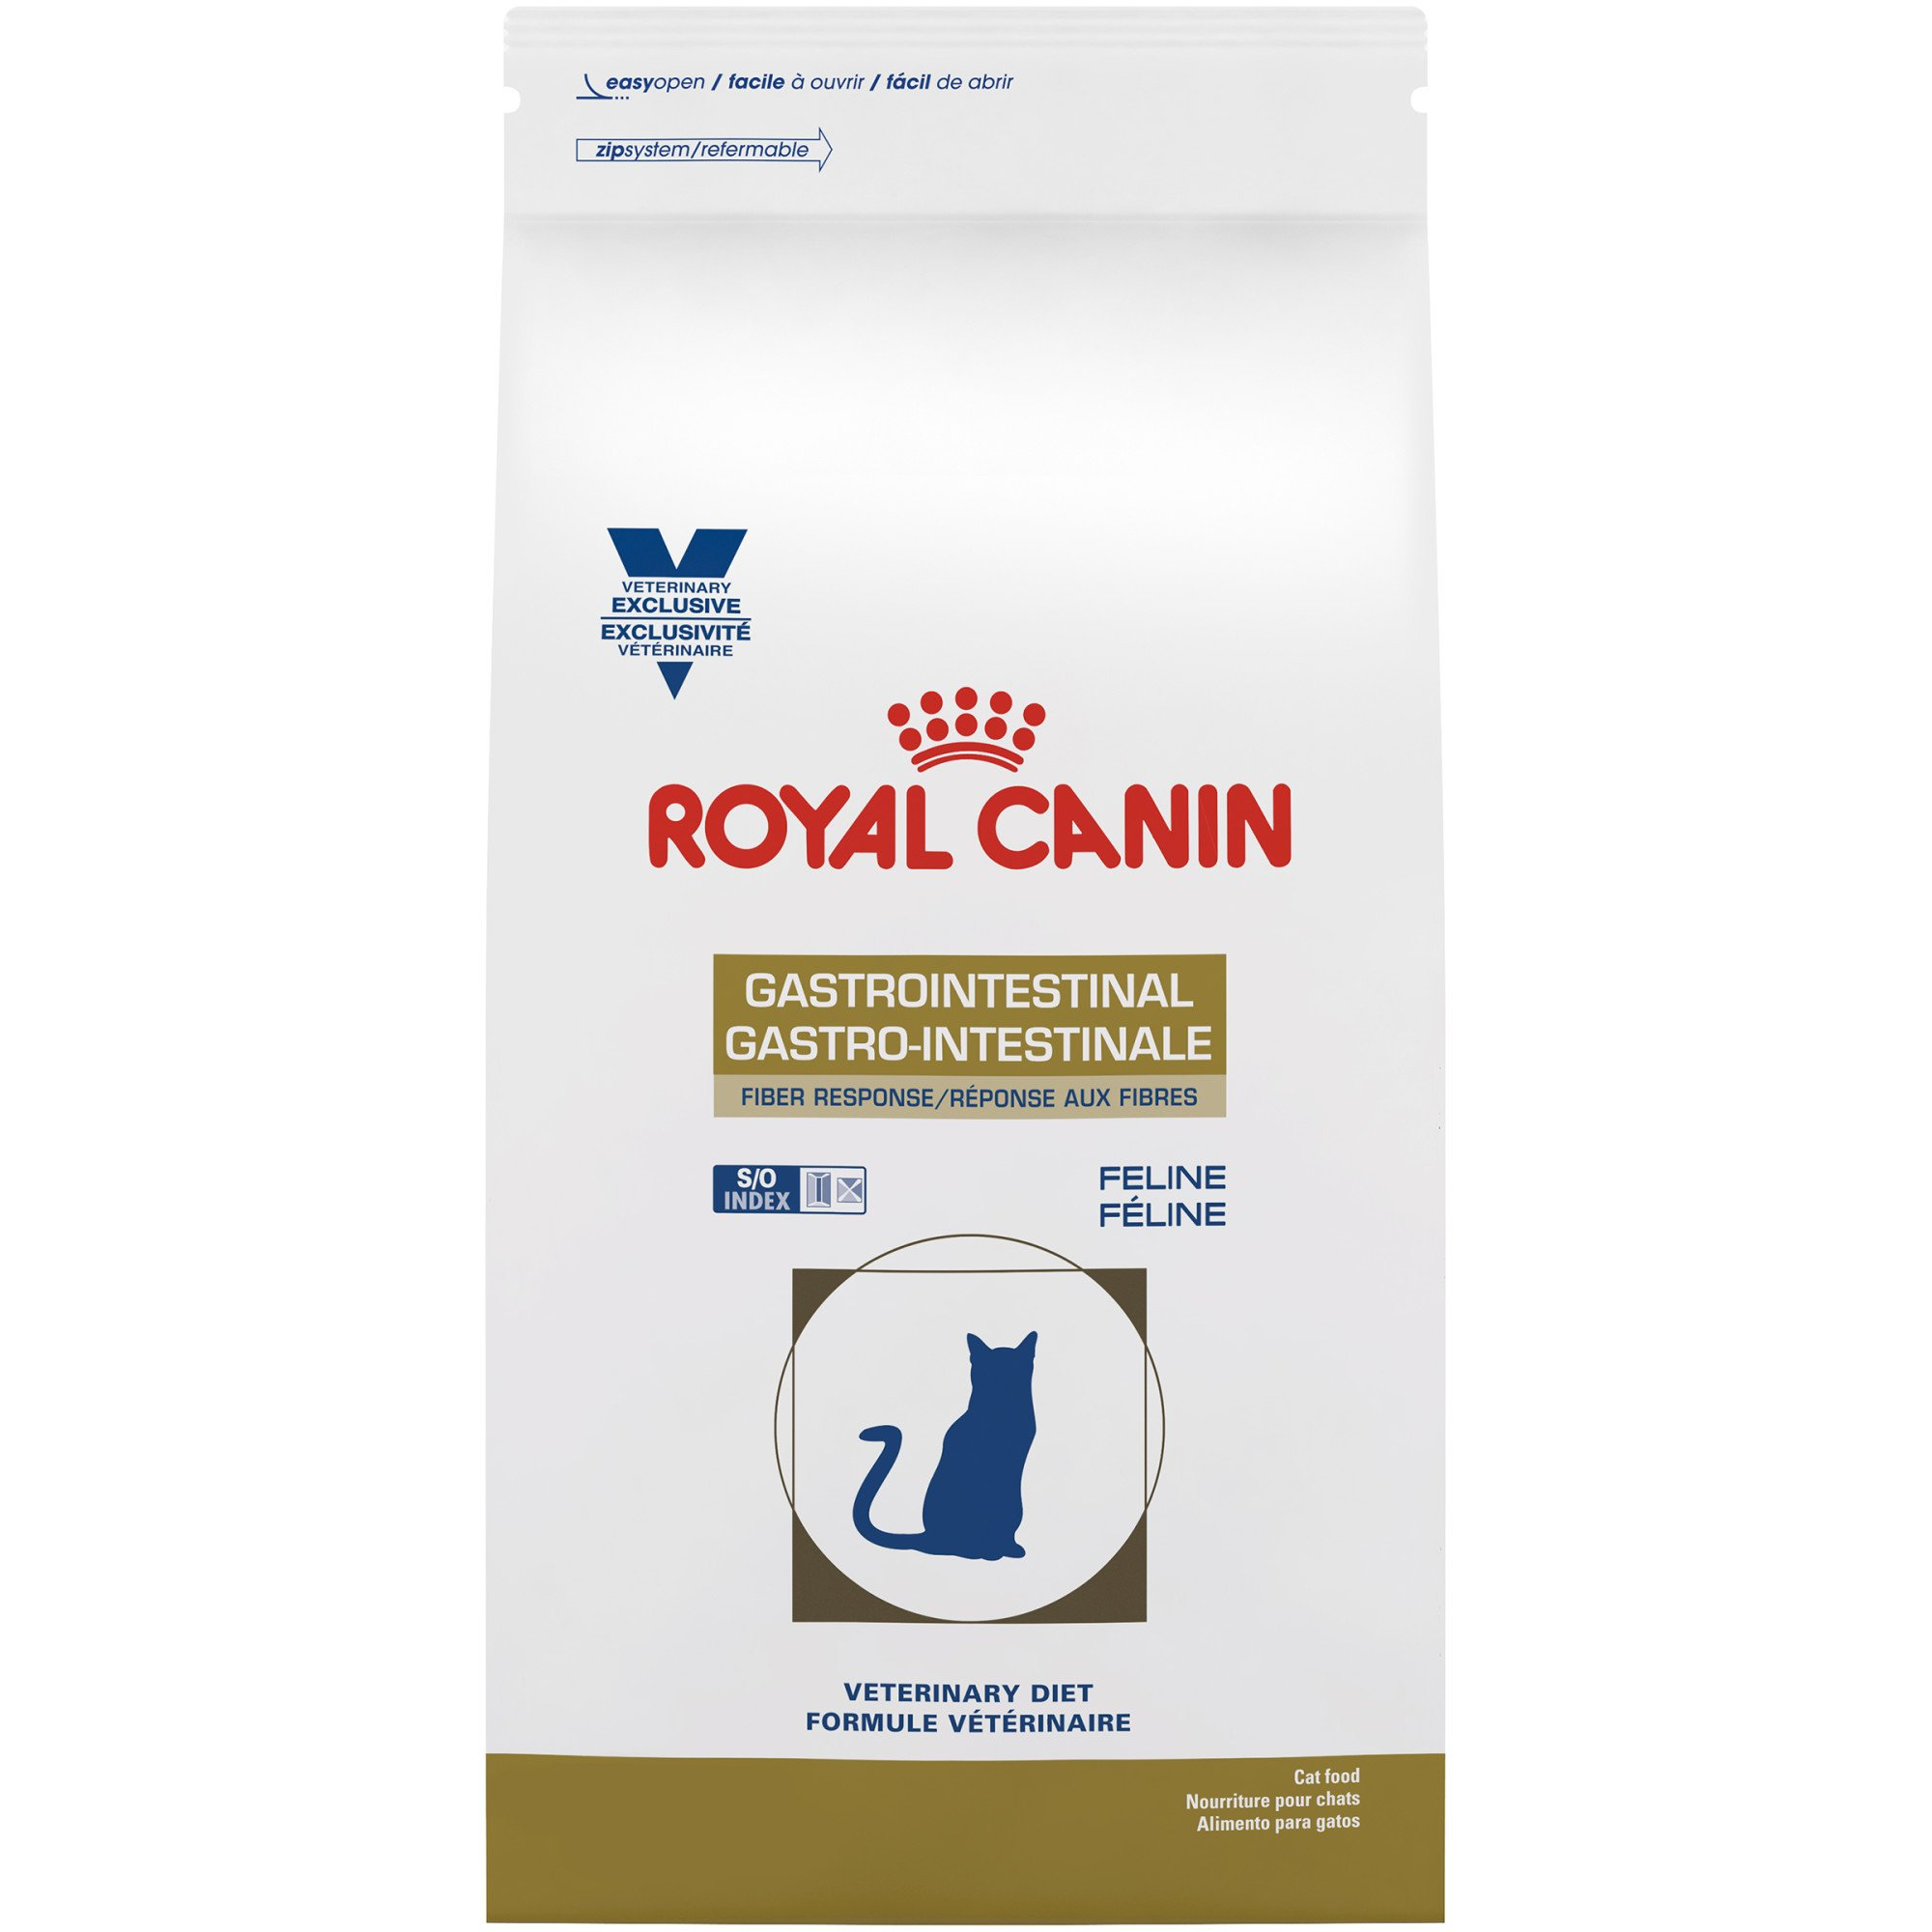 Royal Canin Thyroid Cat Food